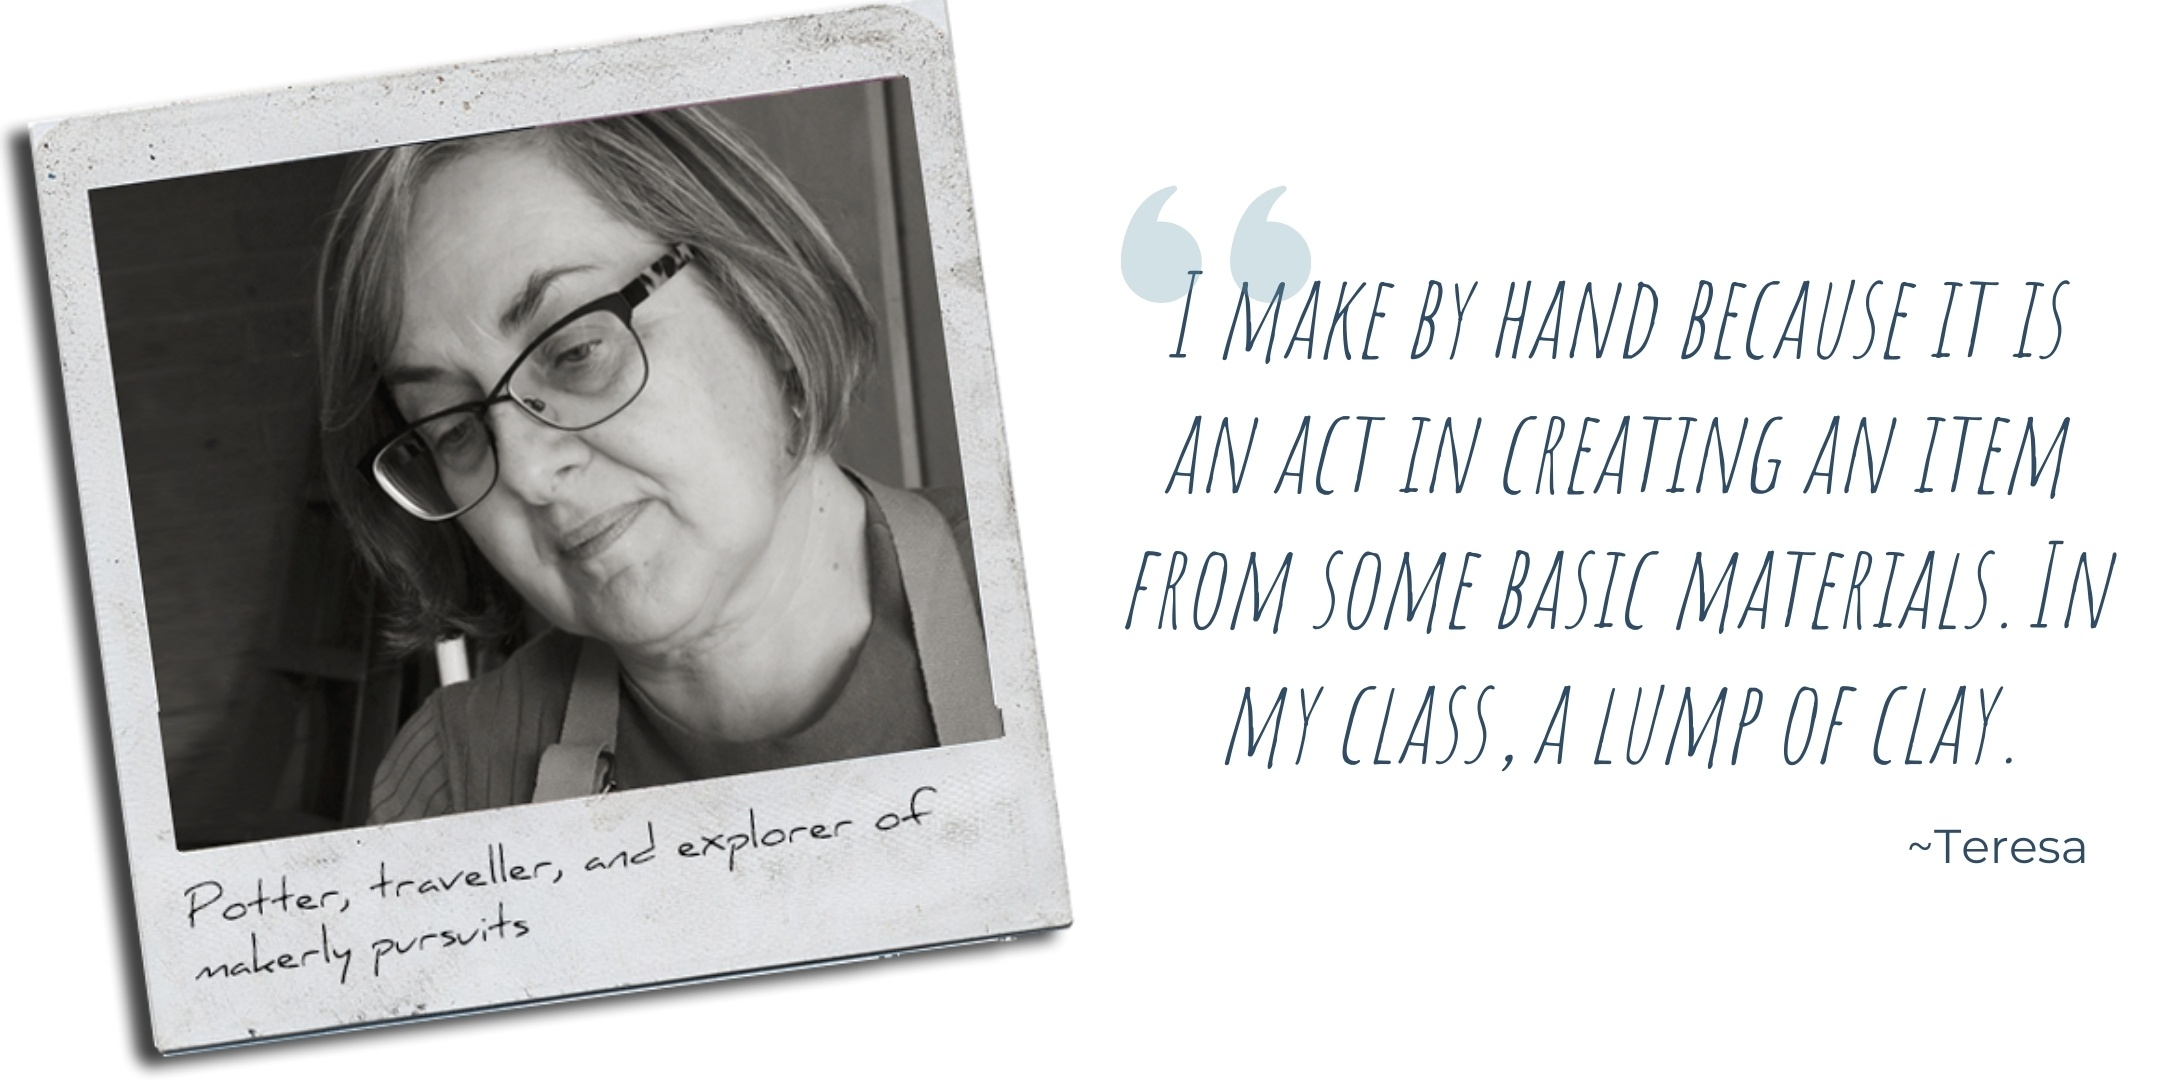 Potter, traveller, and explorer of makerly pursuits, Teresa: 'I make by hand because it is an act in creating an item from some basic materials. In my class, a lump of clay.'